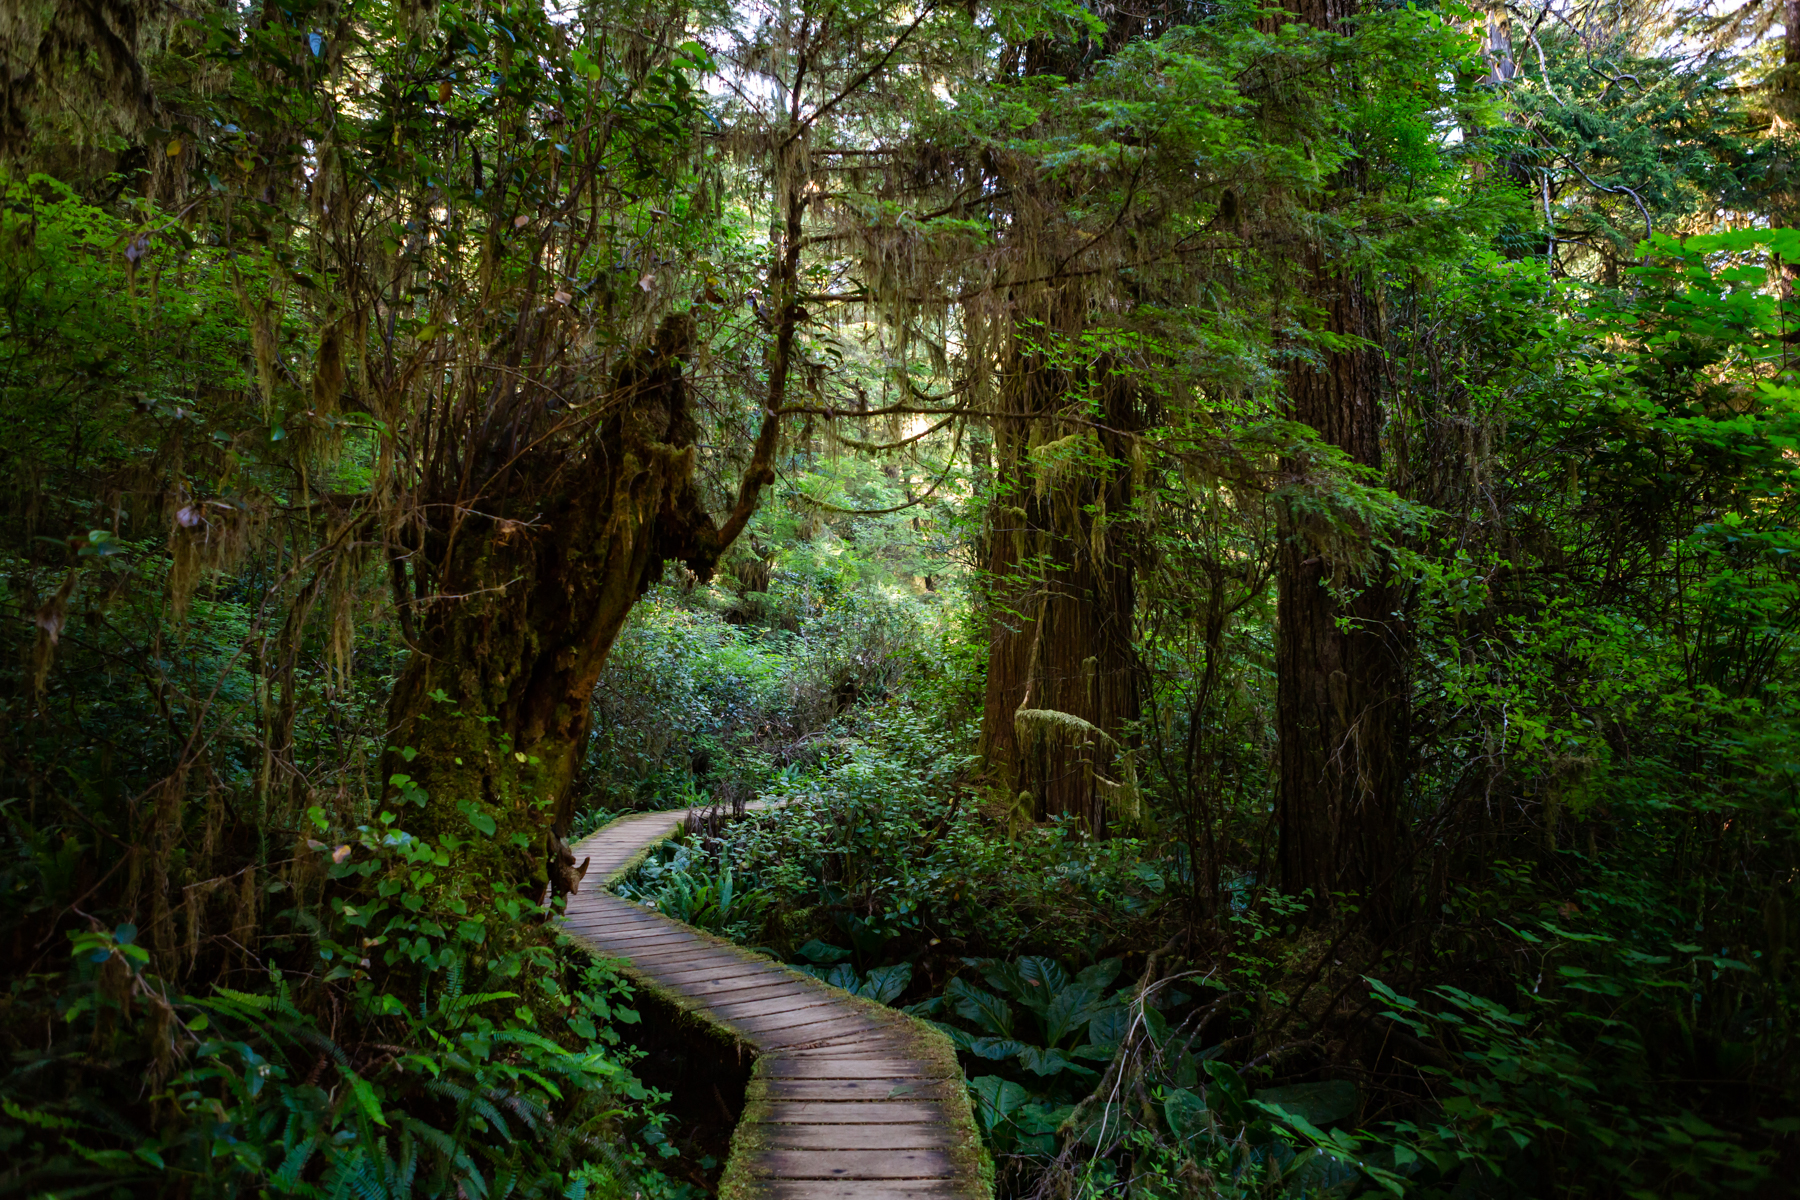 Rainforest with wooden pathway